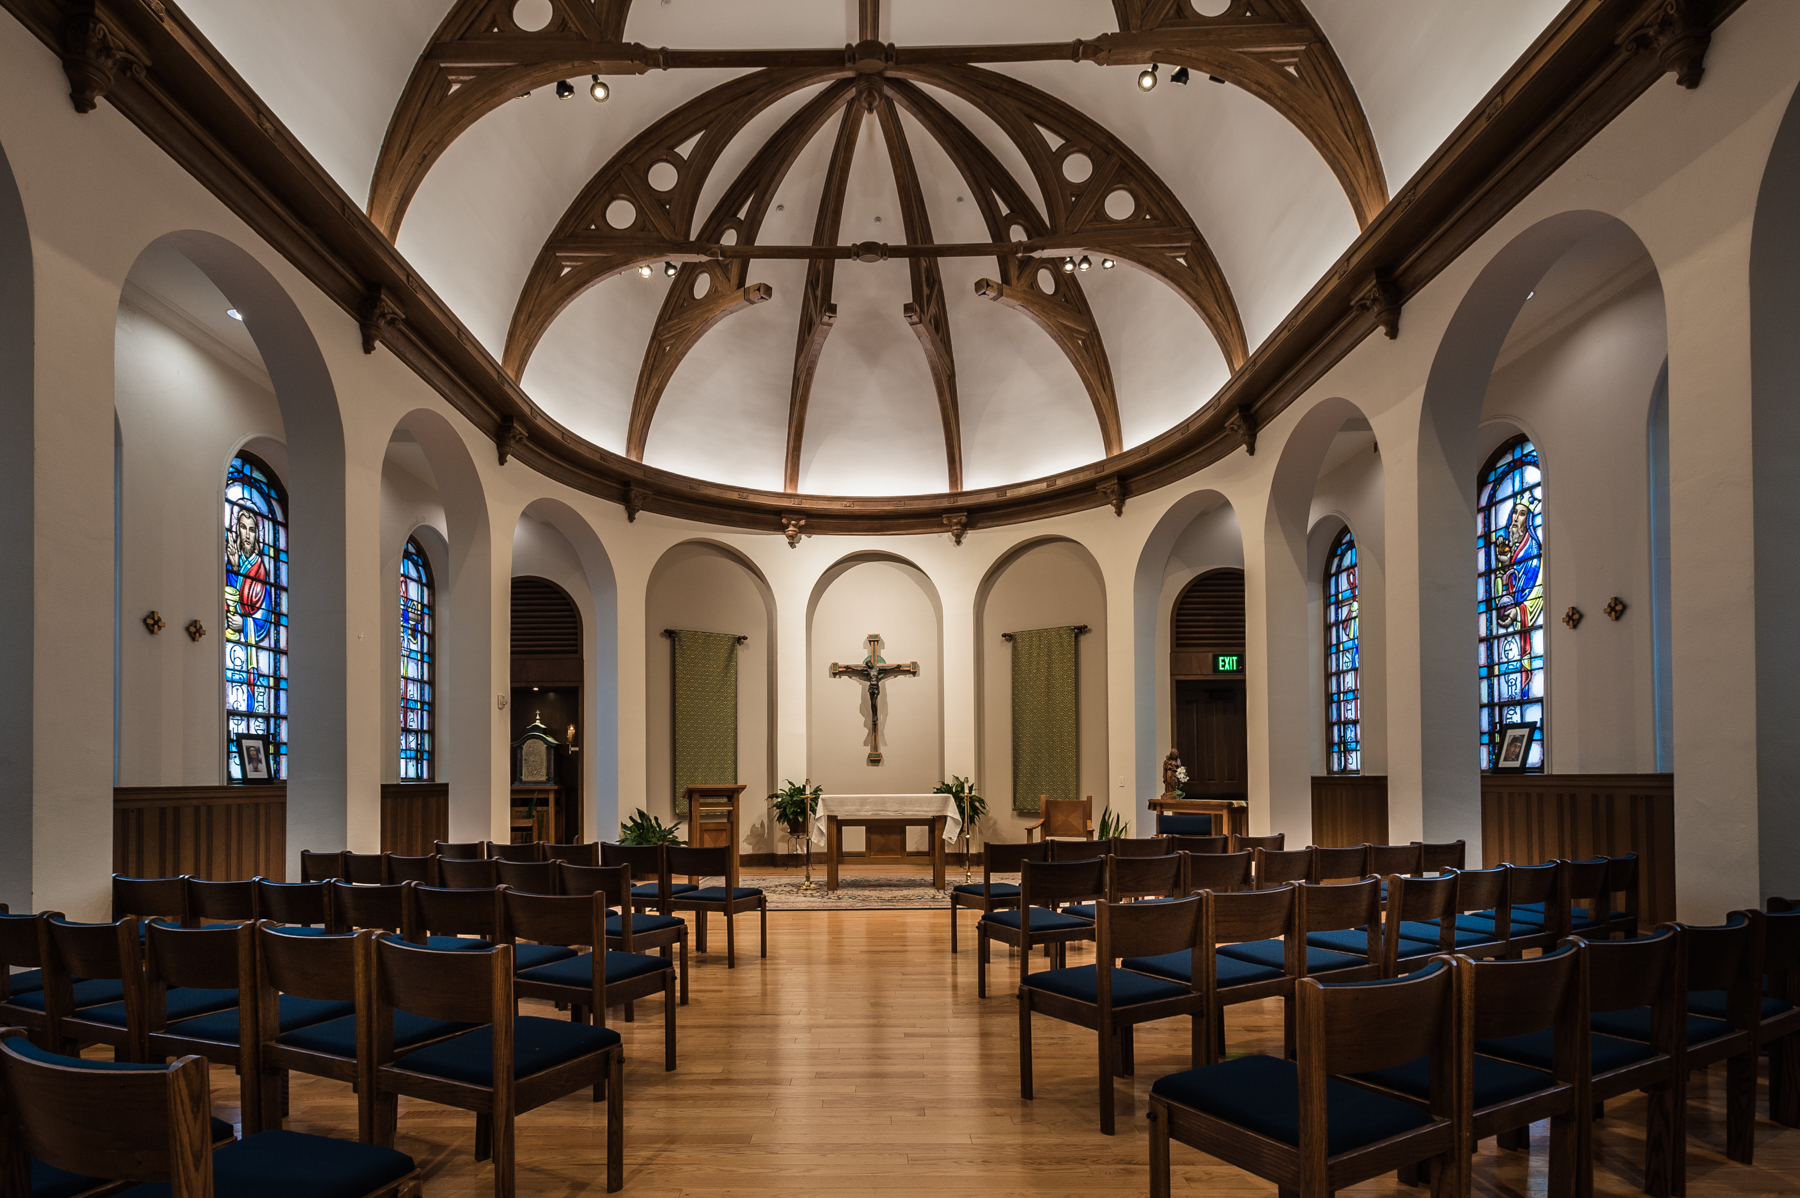 - Chapels and other sacred sites dot the campus as part of the College's commitment to care for community members academically, socially and spiritually.